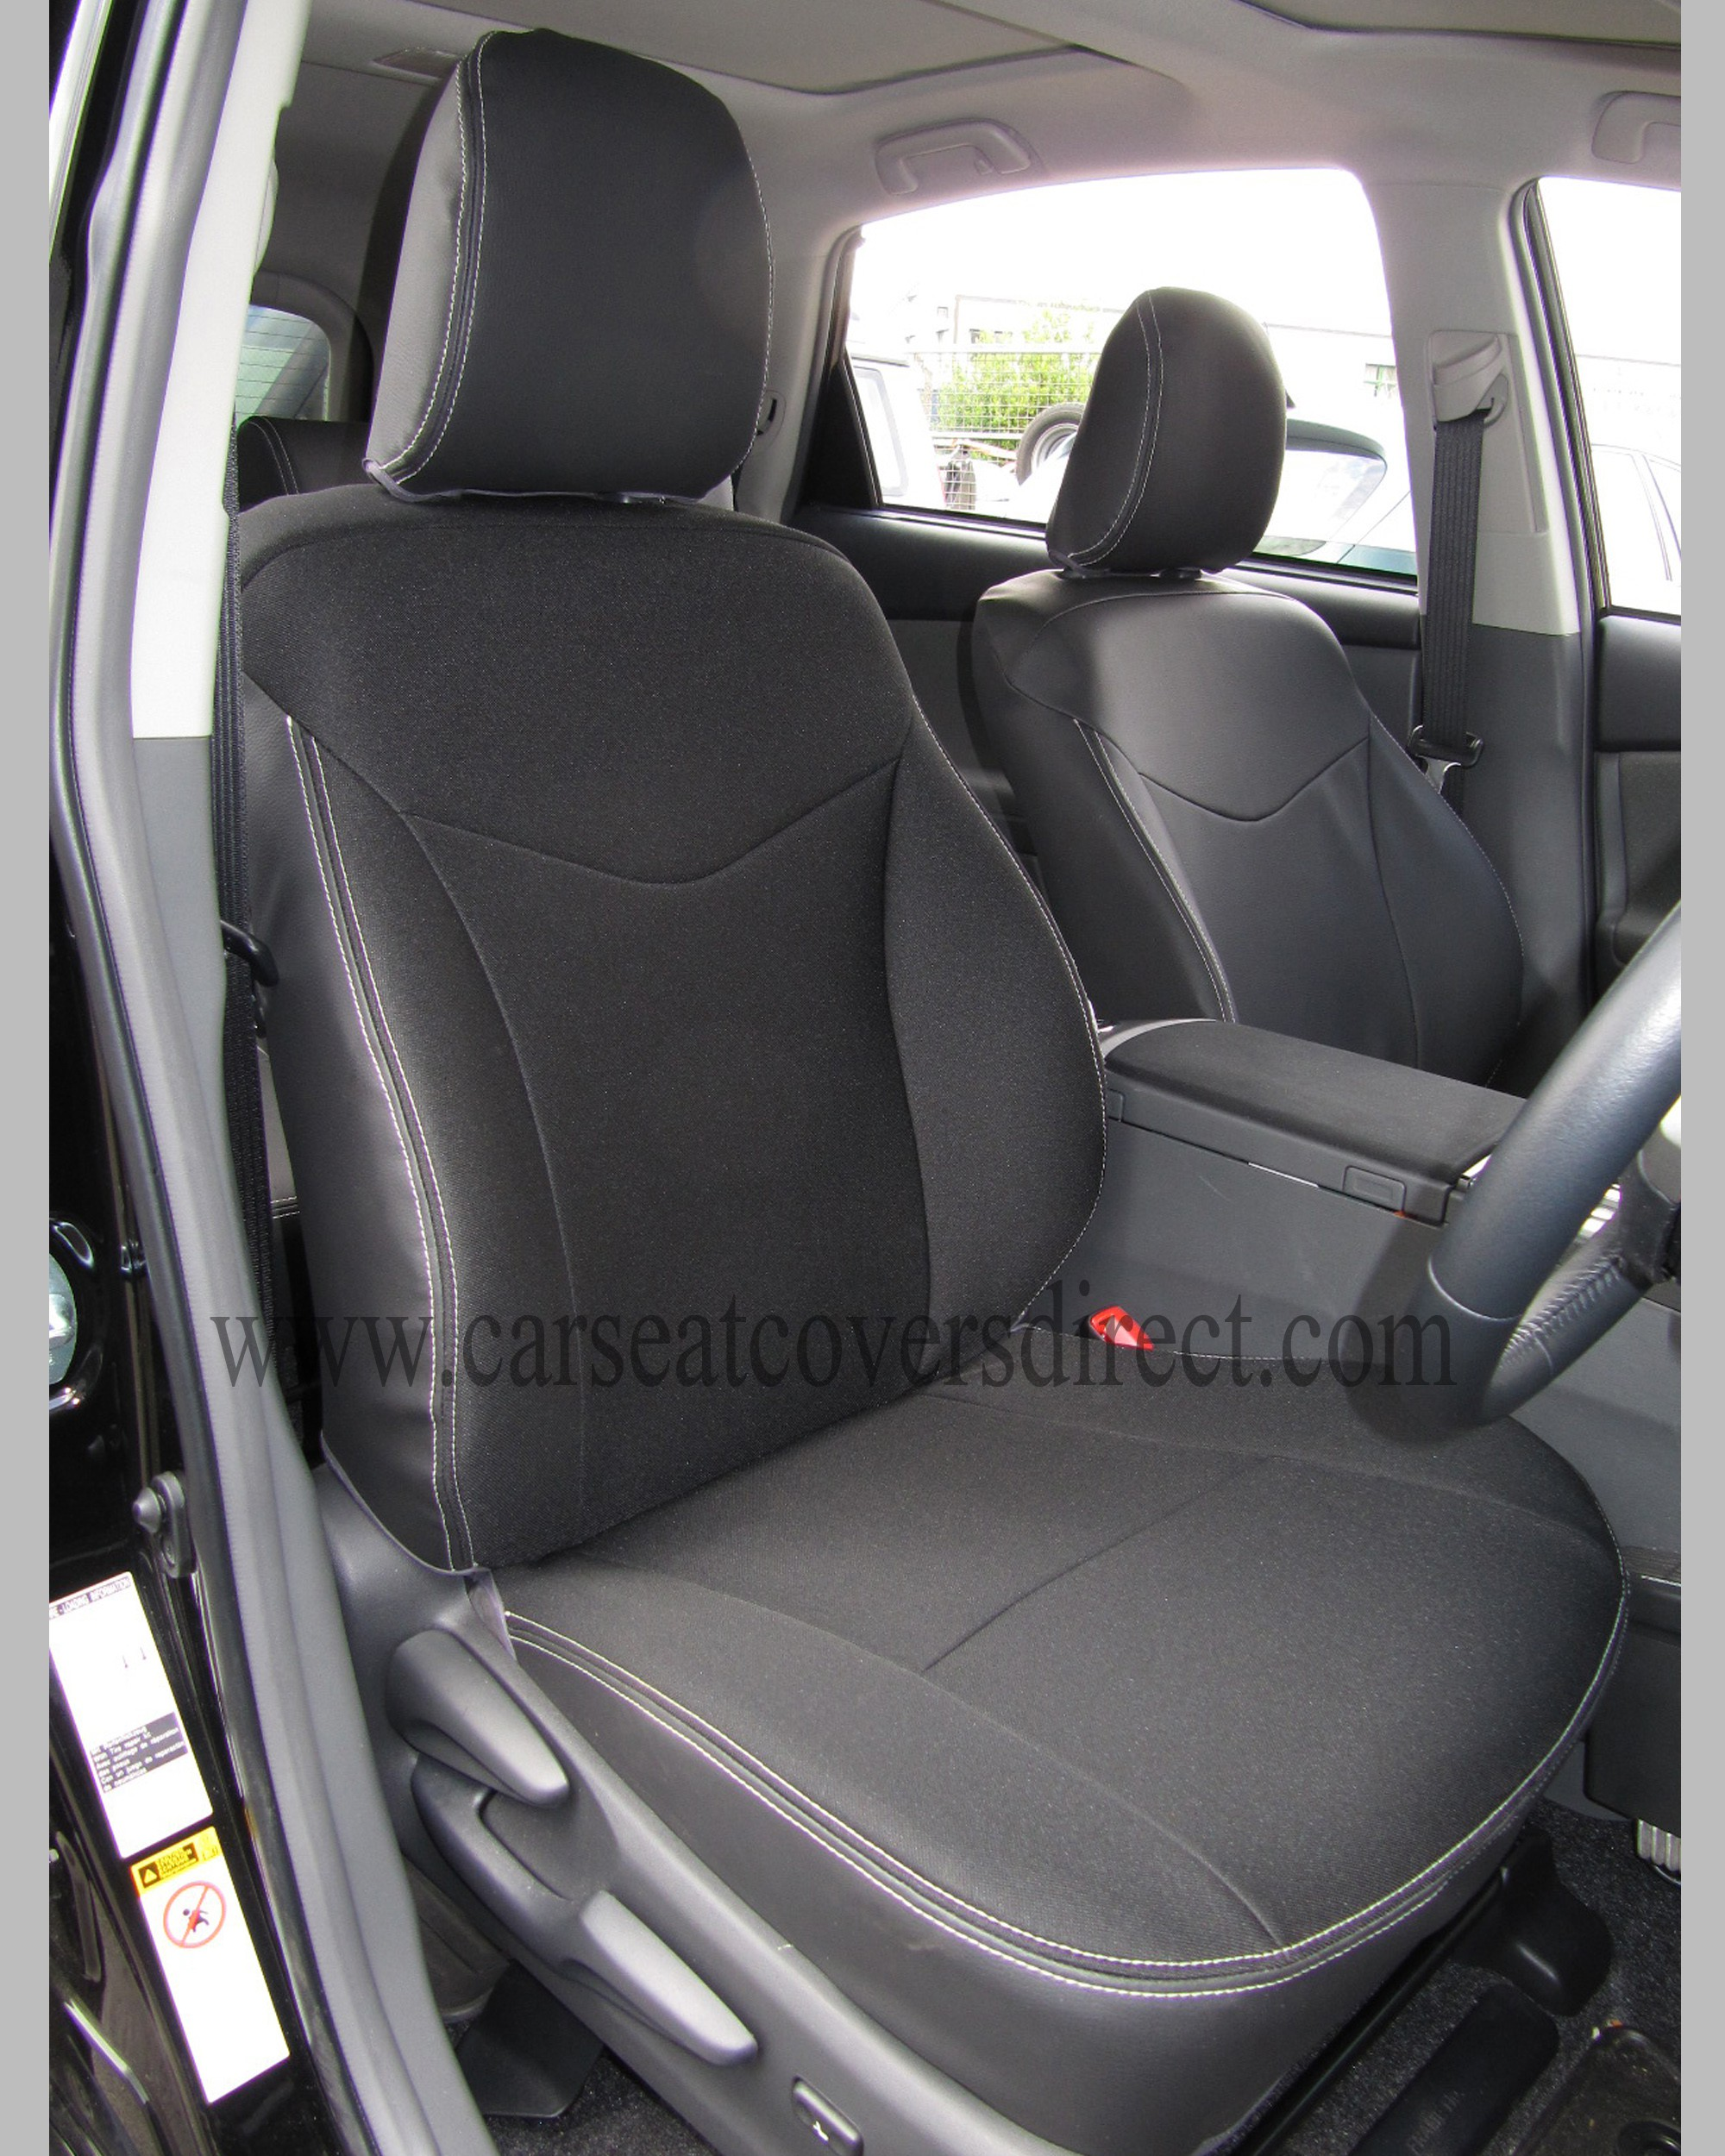 Toyota Prius Plus Taxi Pack 7 Seat Model Car Seat Covers